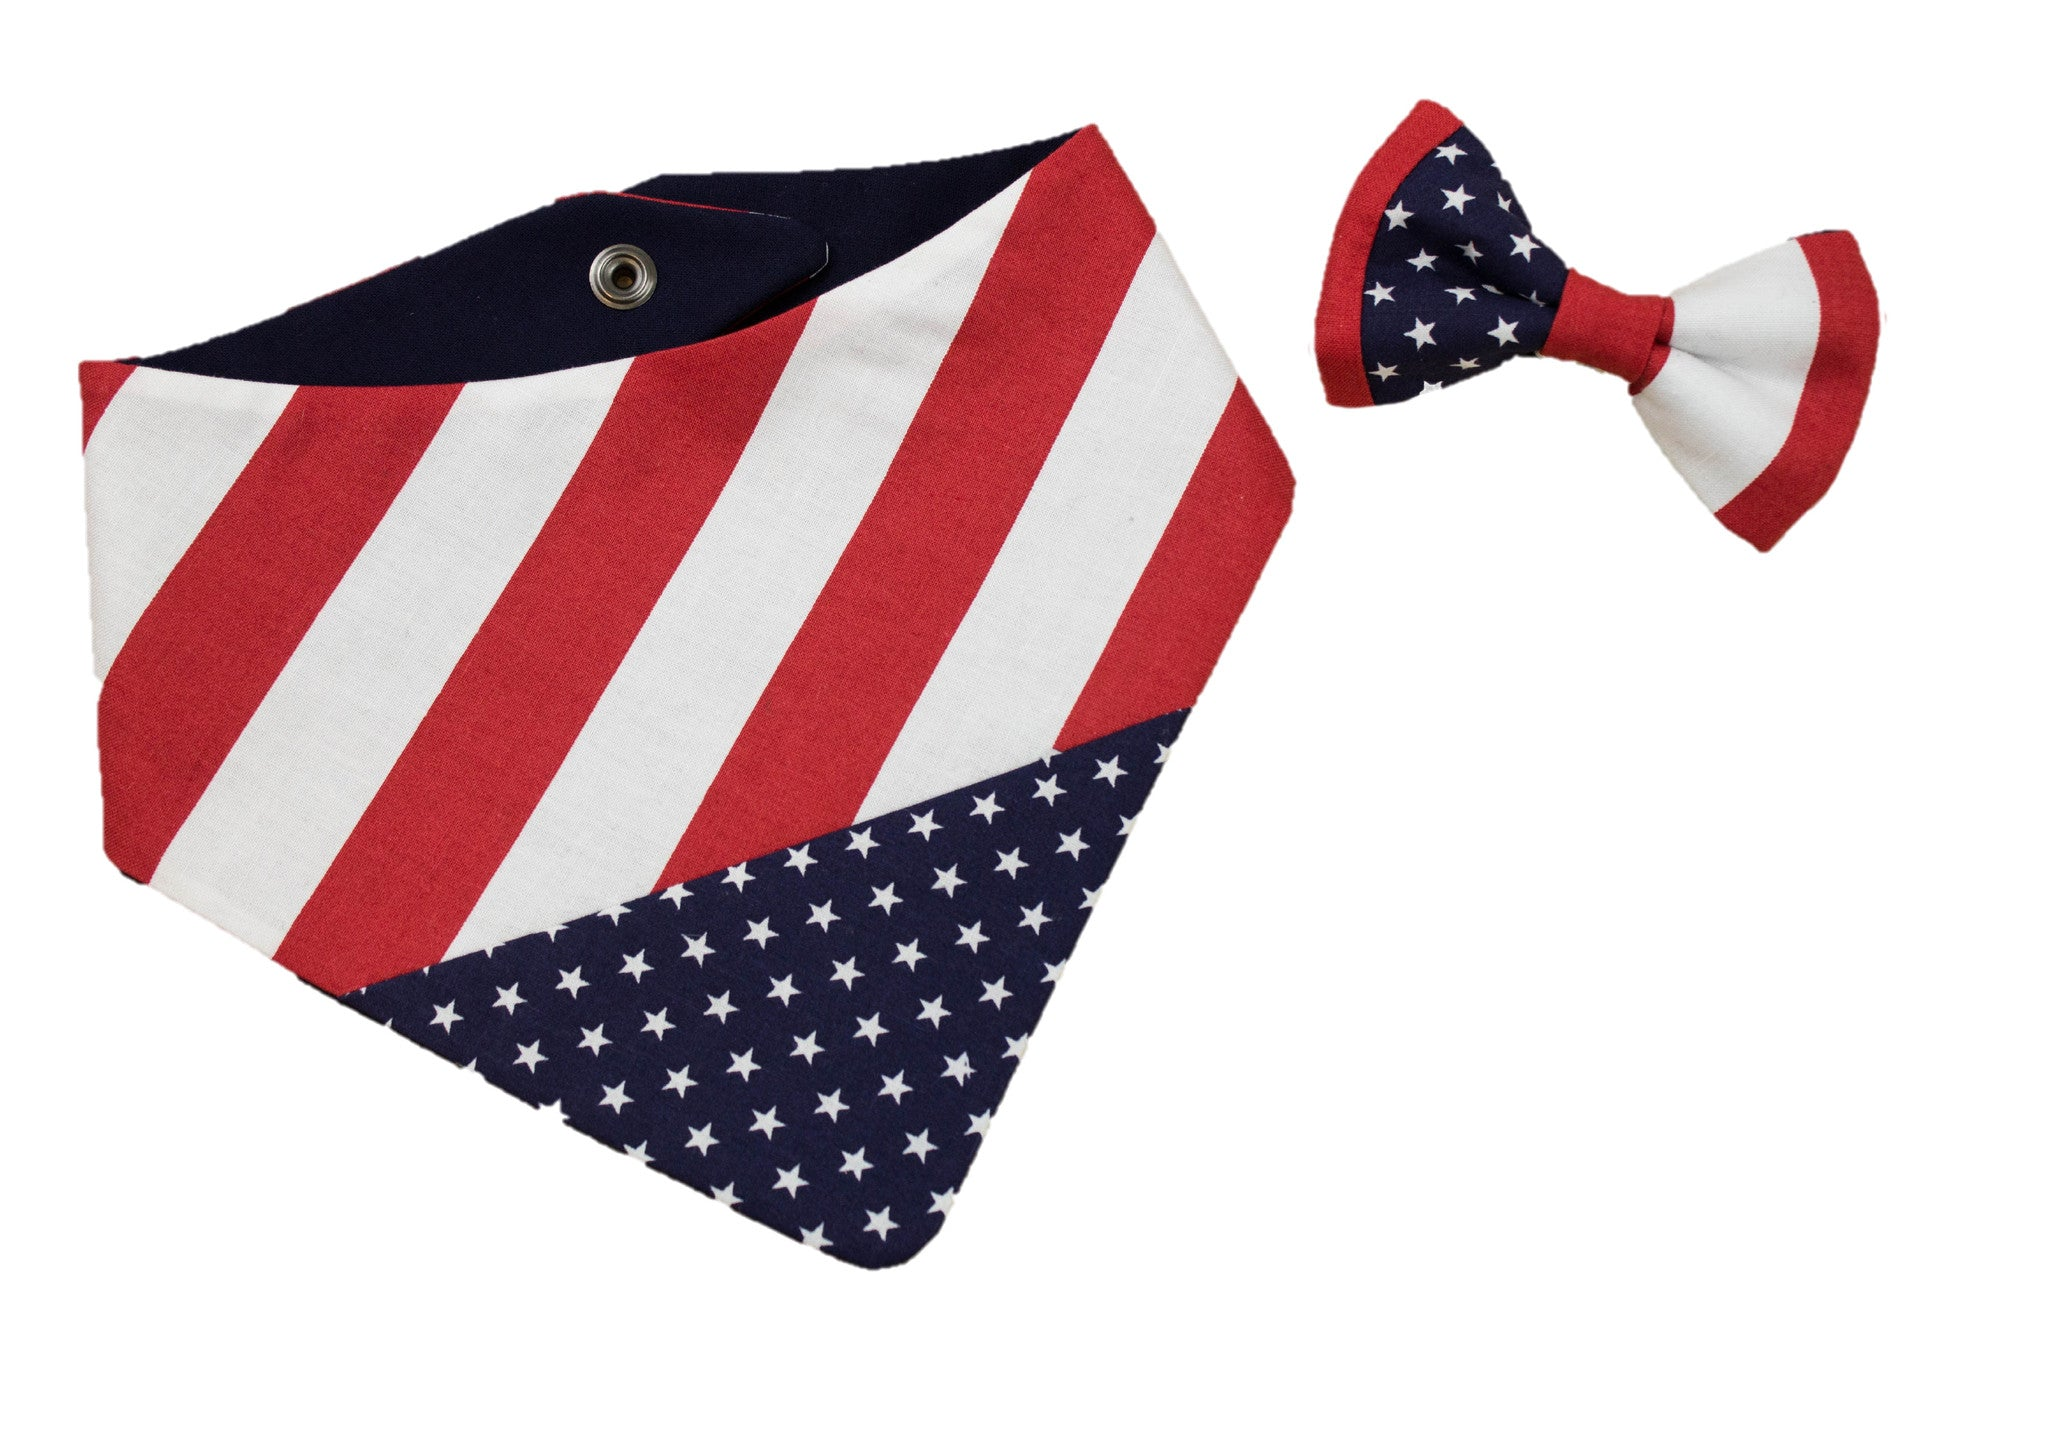 The Spangled Bow Tie